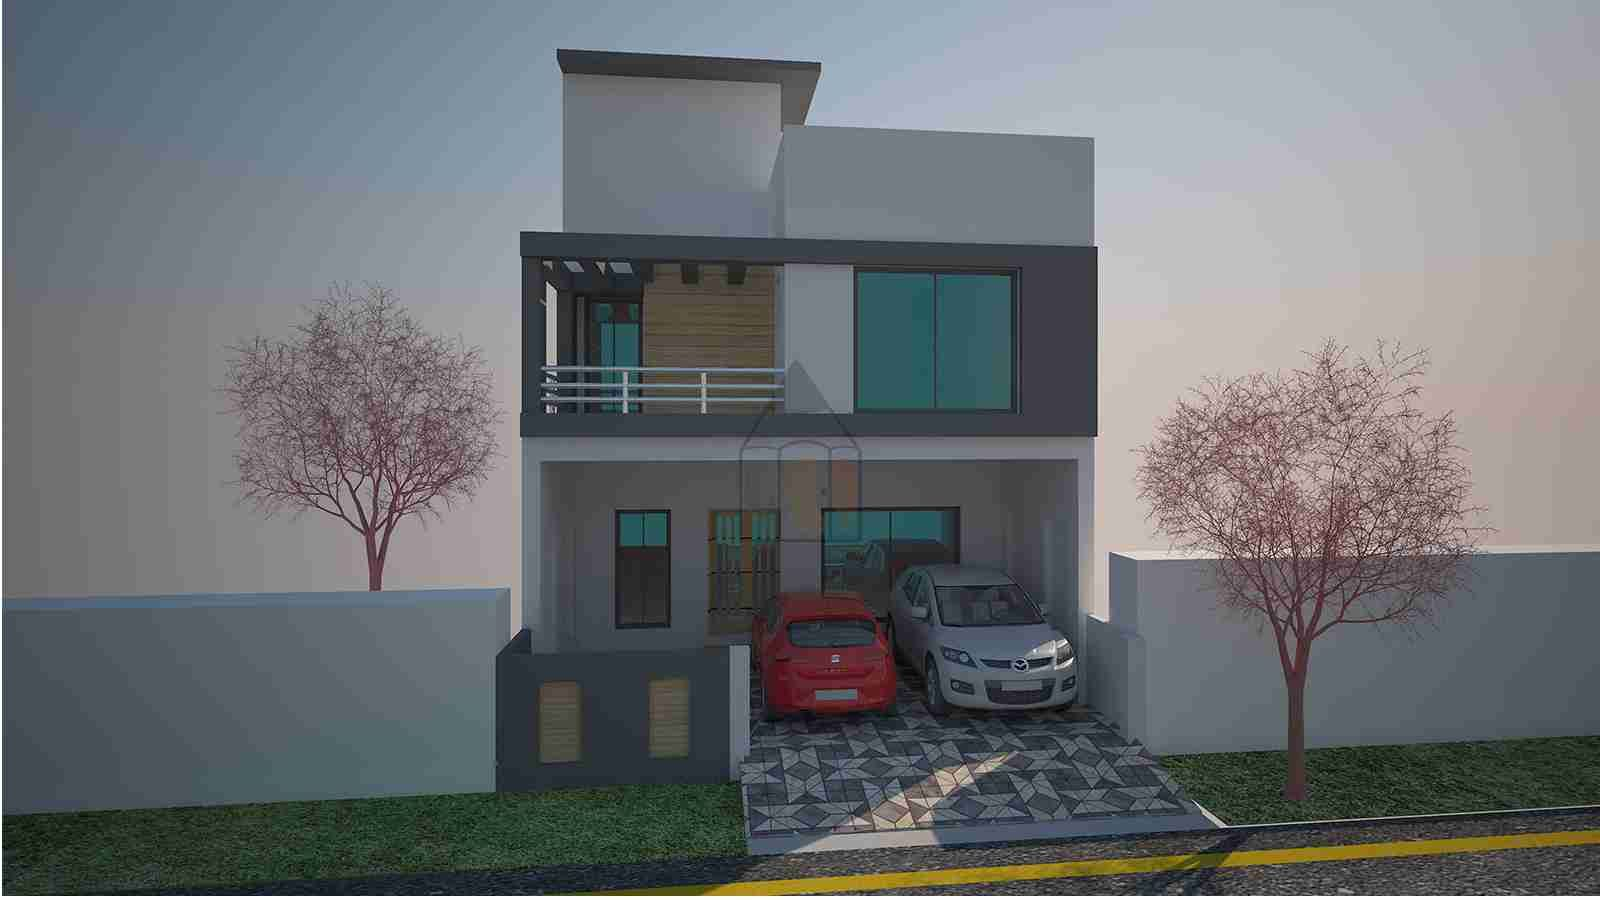 5 marla pakistani home design with basement front elevation | House